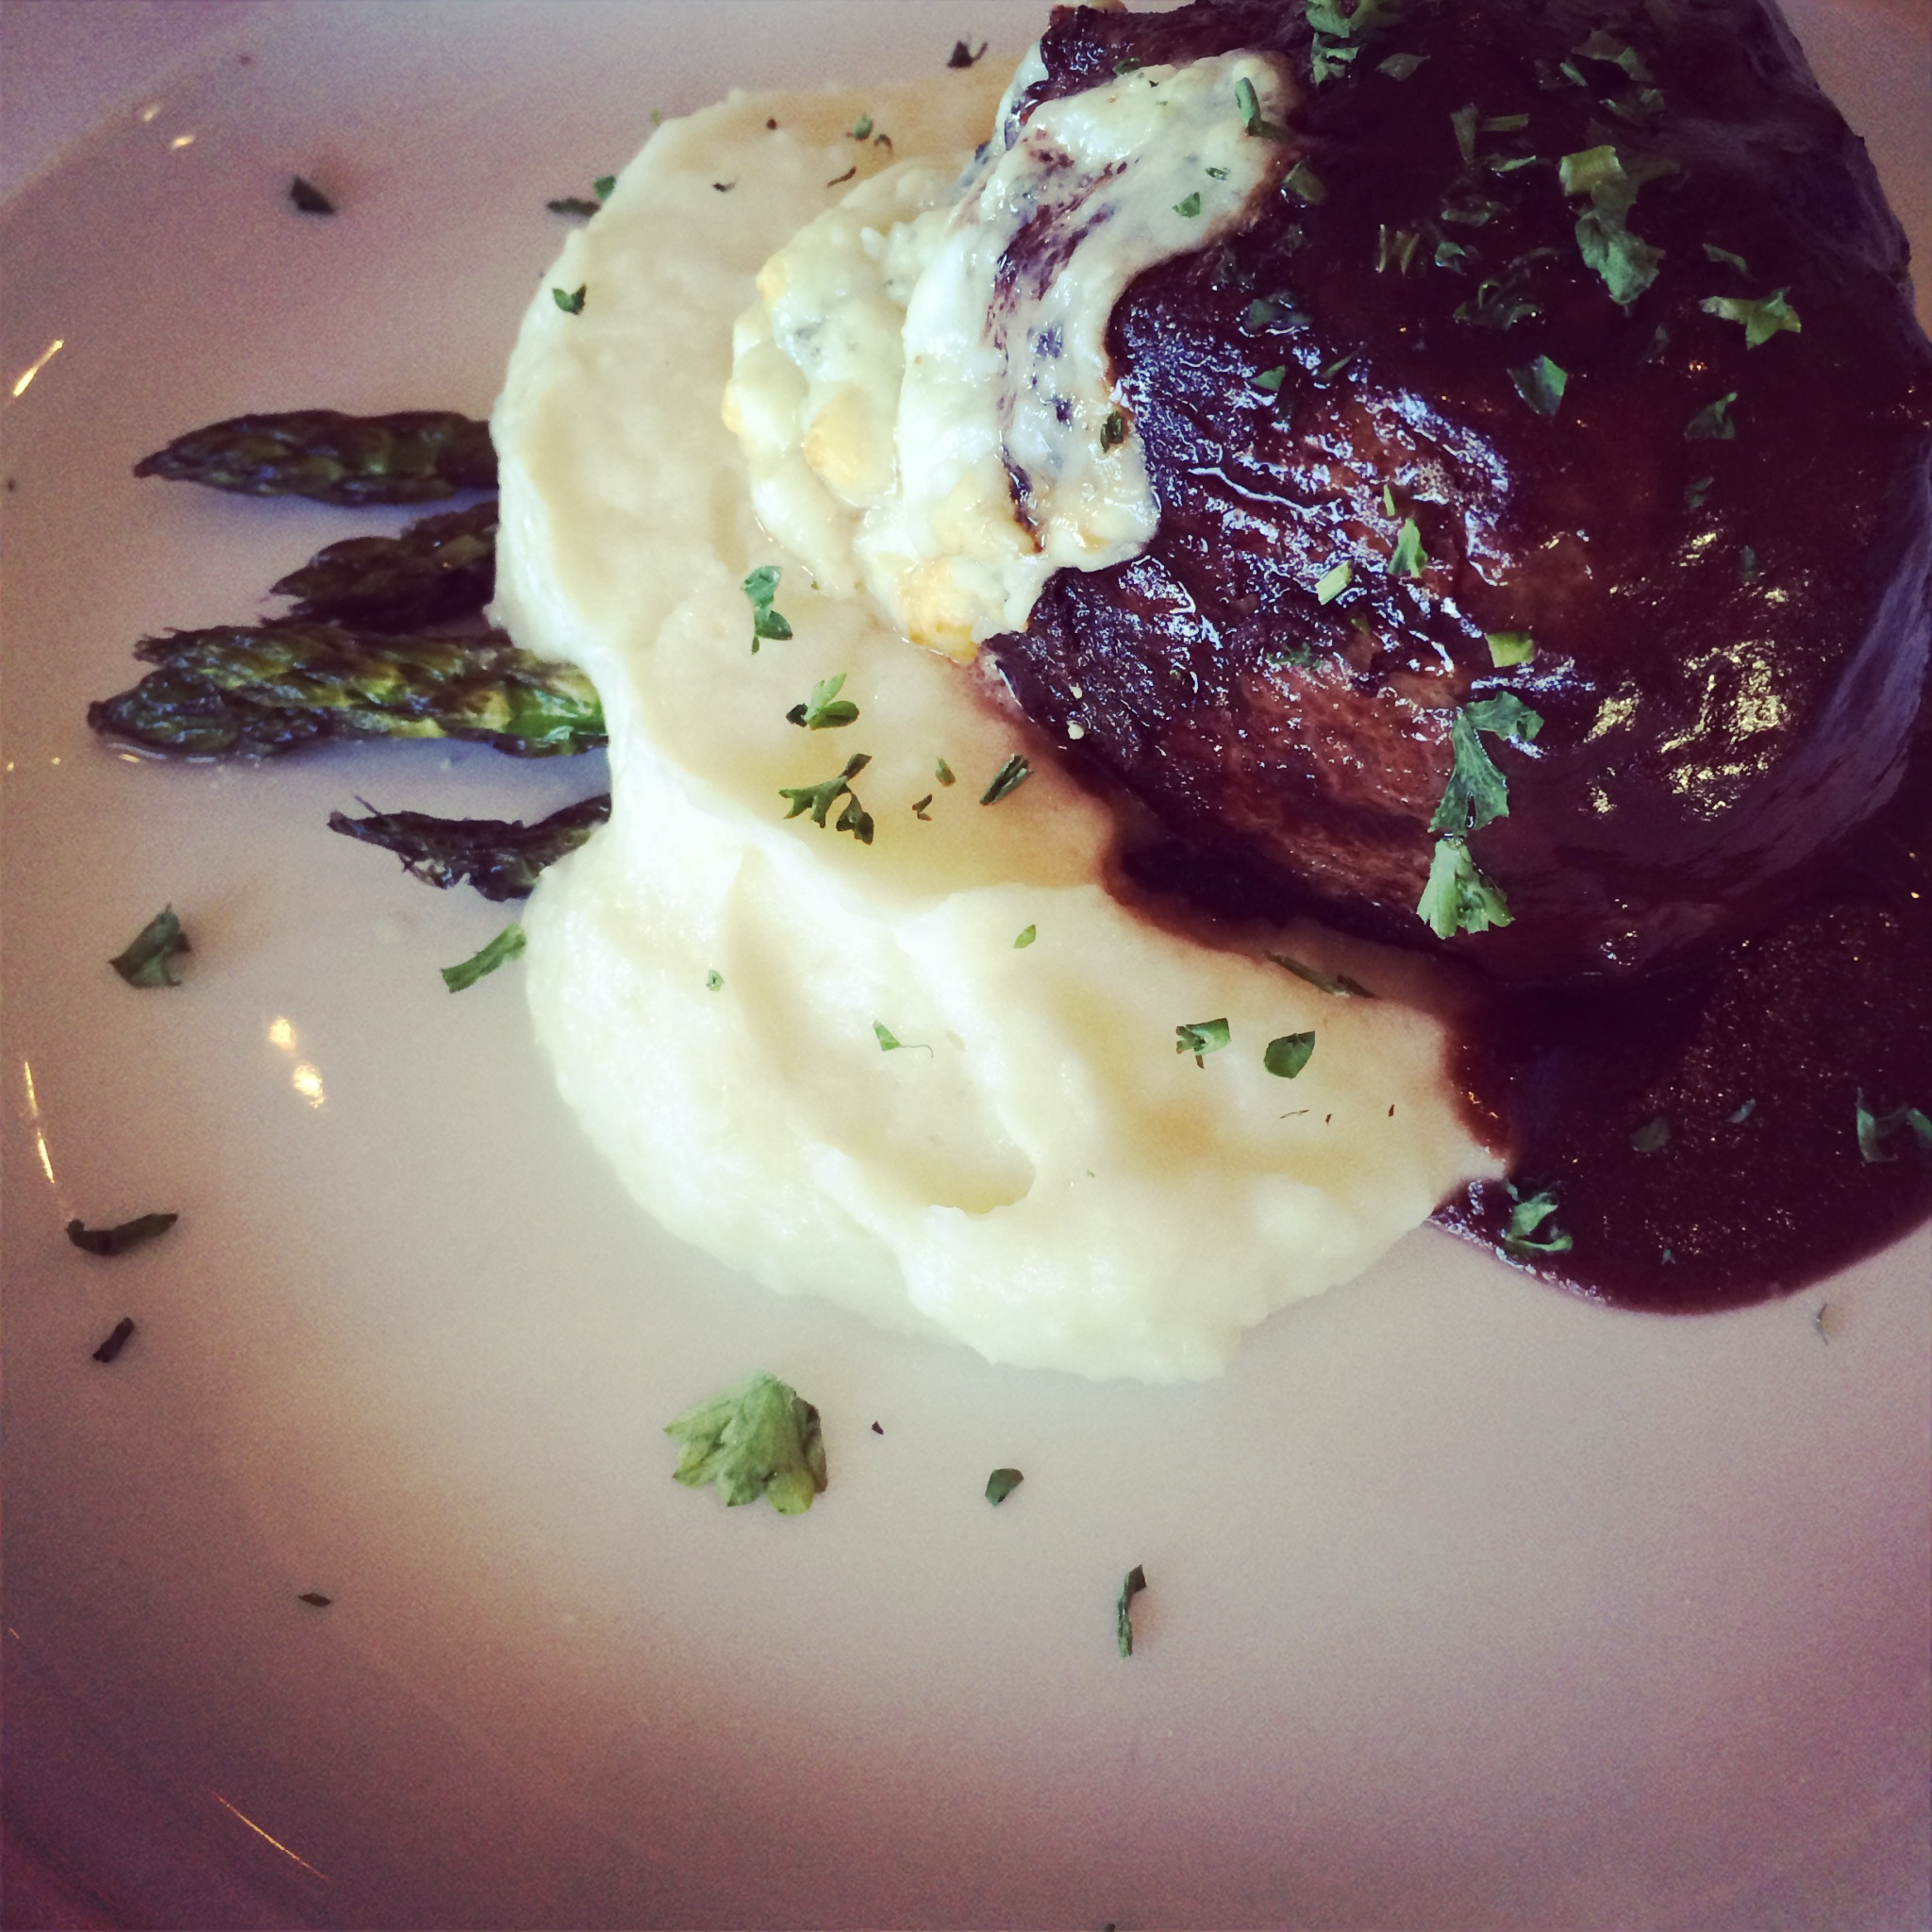 Gorgonzola Crusted Filet and Whipped Potatoes at Siena Golf Course.